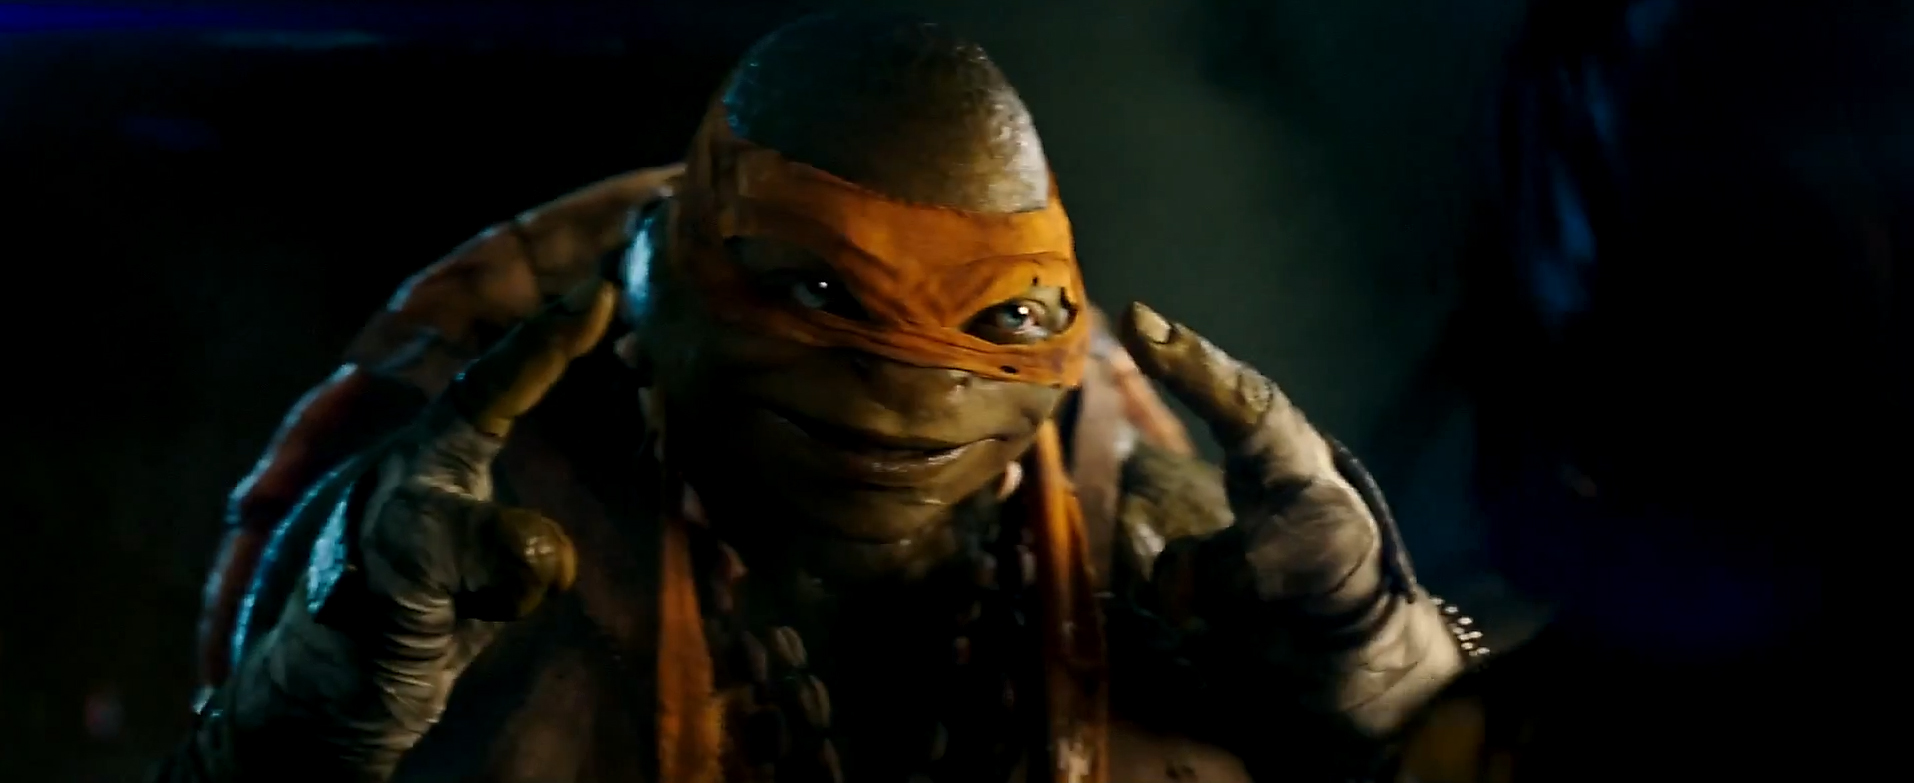 TEENAGE MUTANT NINJA-Official Poster Banner PROMO TRAILER-27MARÇO2014-03